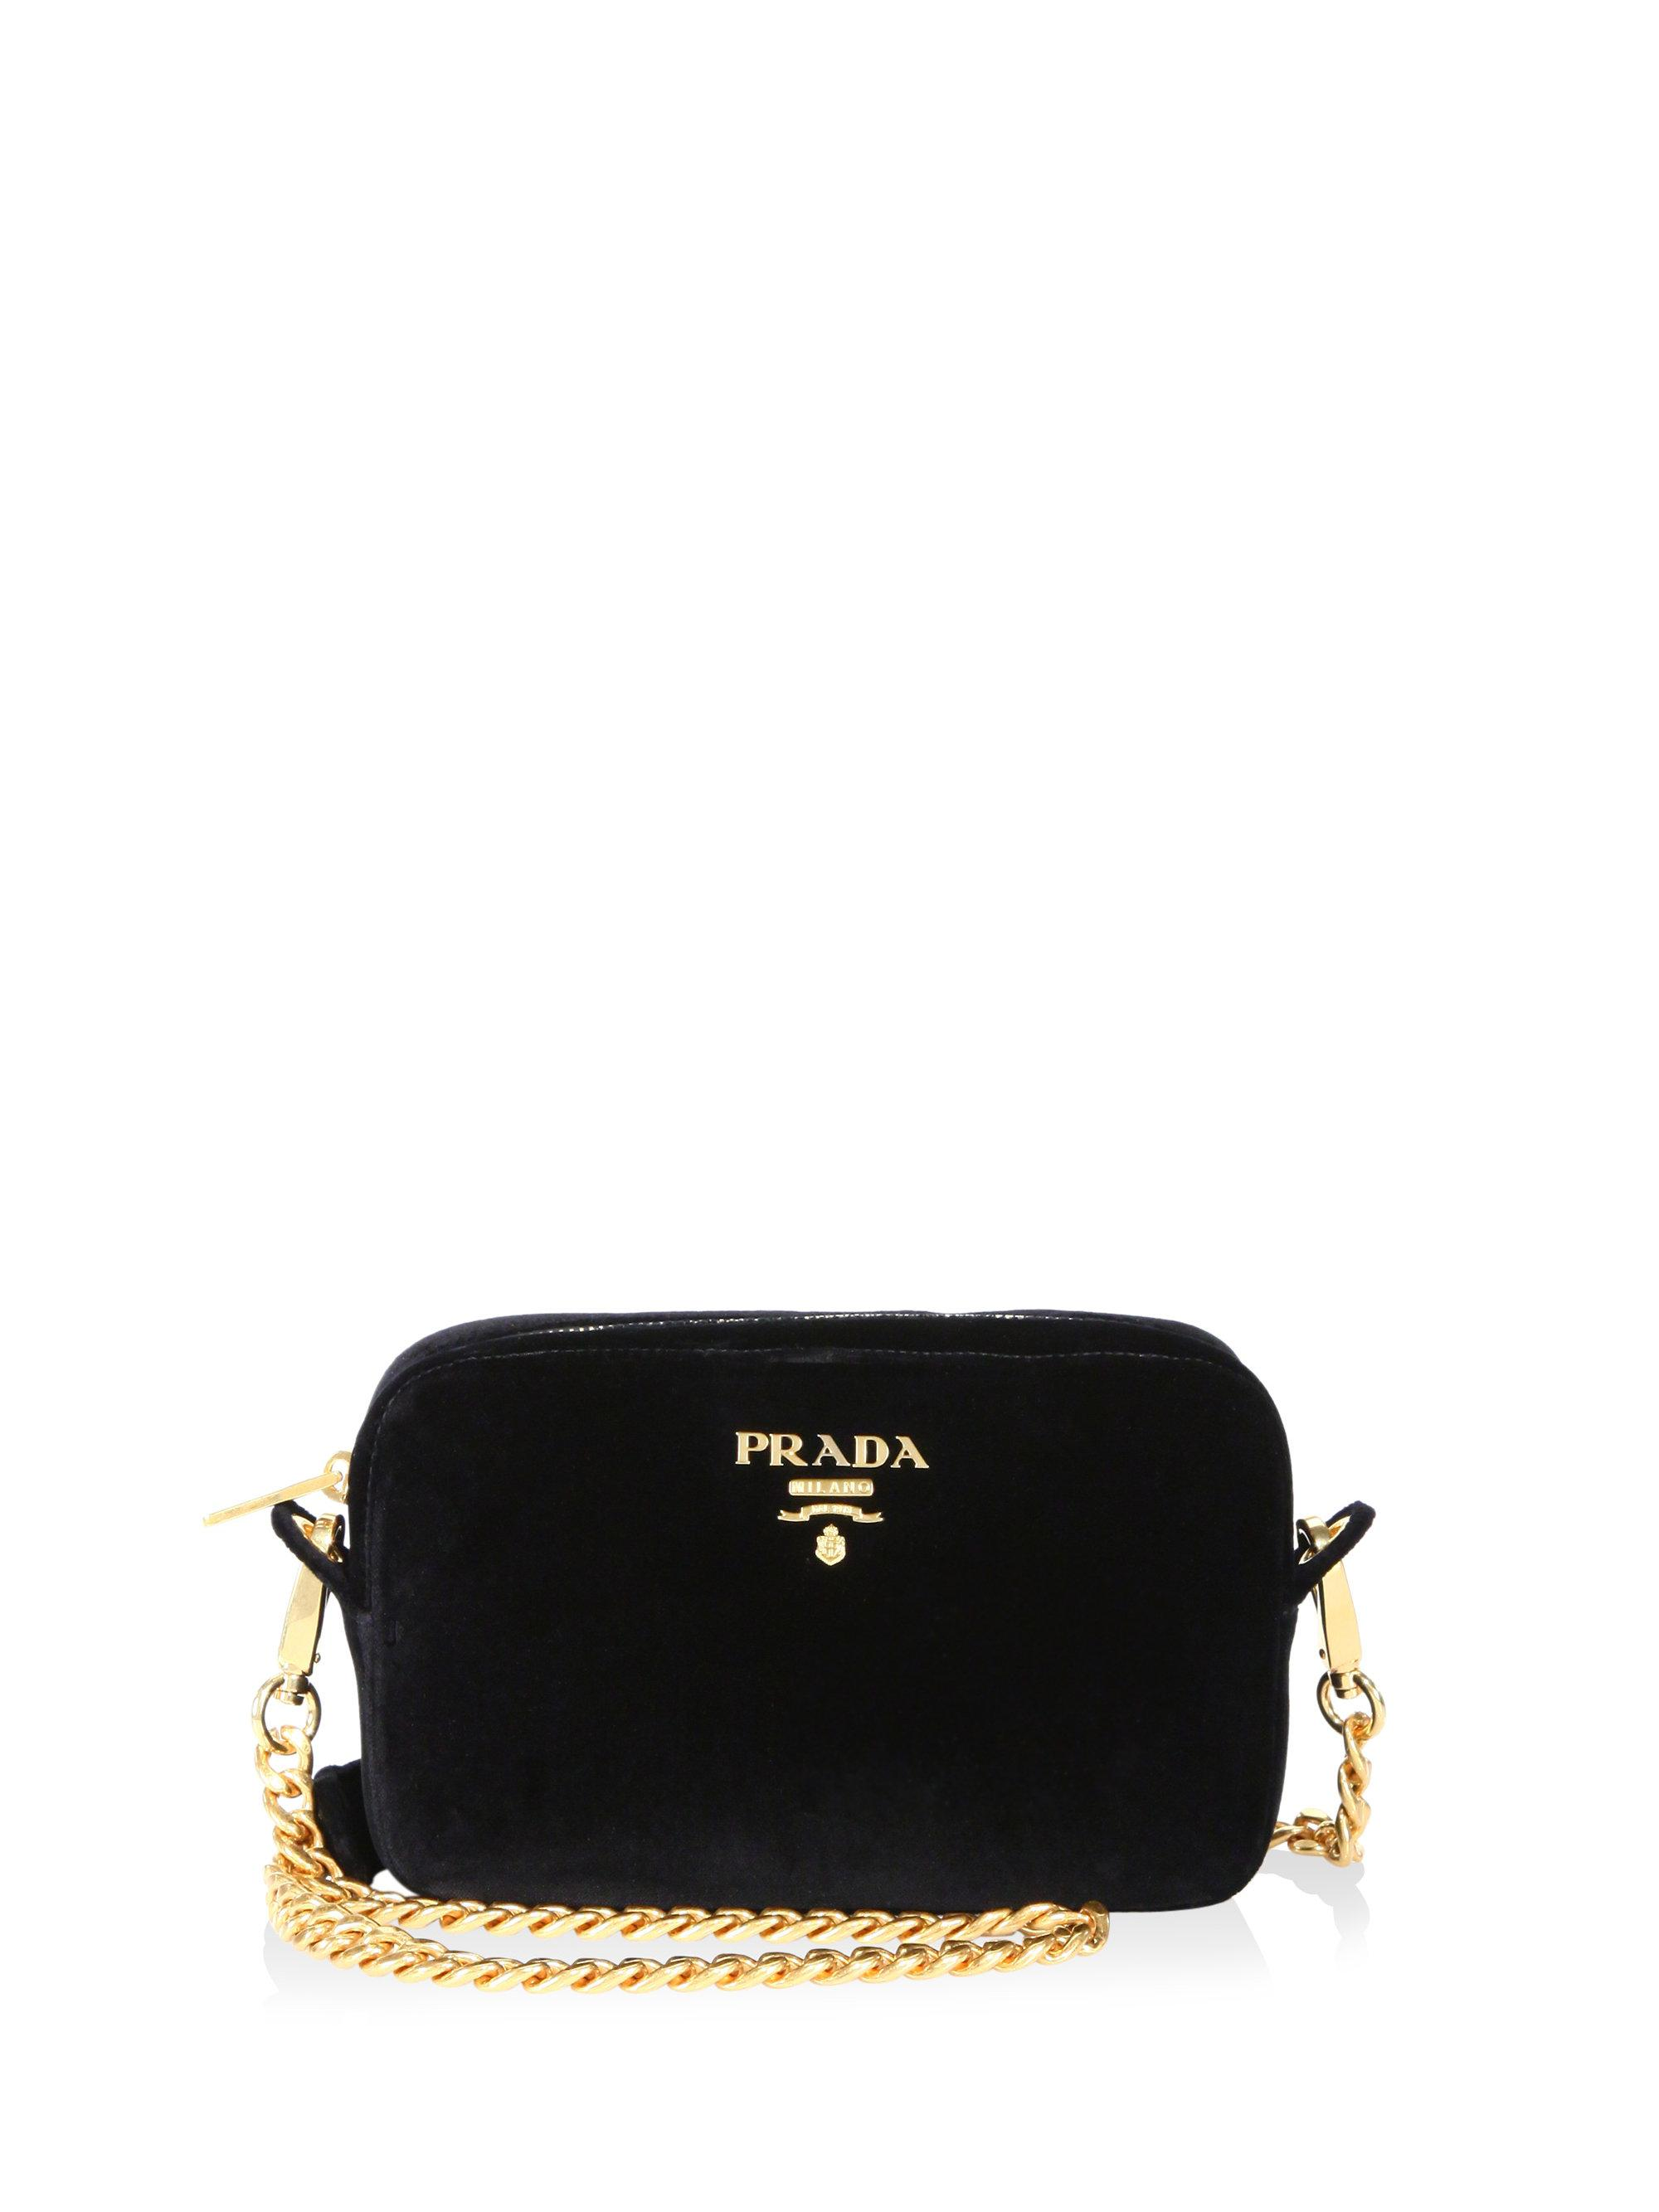 3dc814be675e ... uk prada black bandoliera velvet chain camera bag lyst. view fullscreen  843fc f5afc